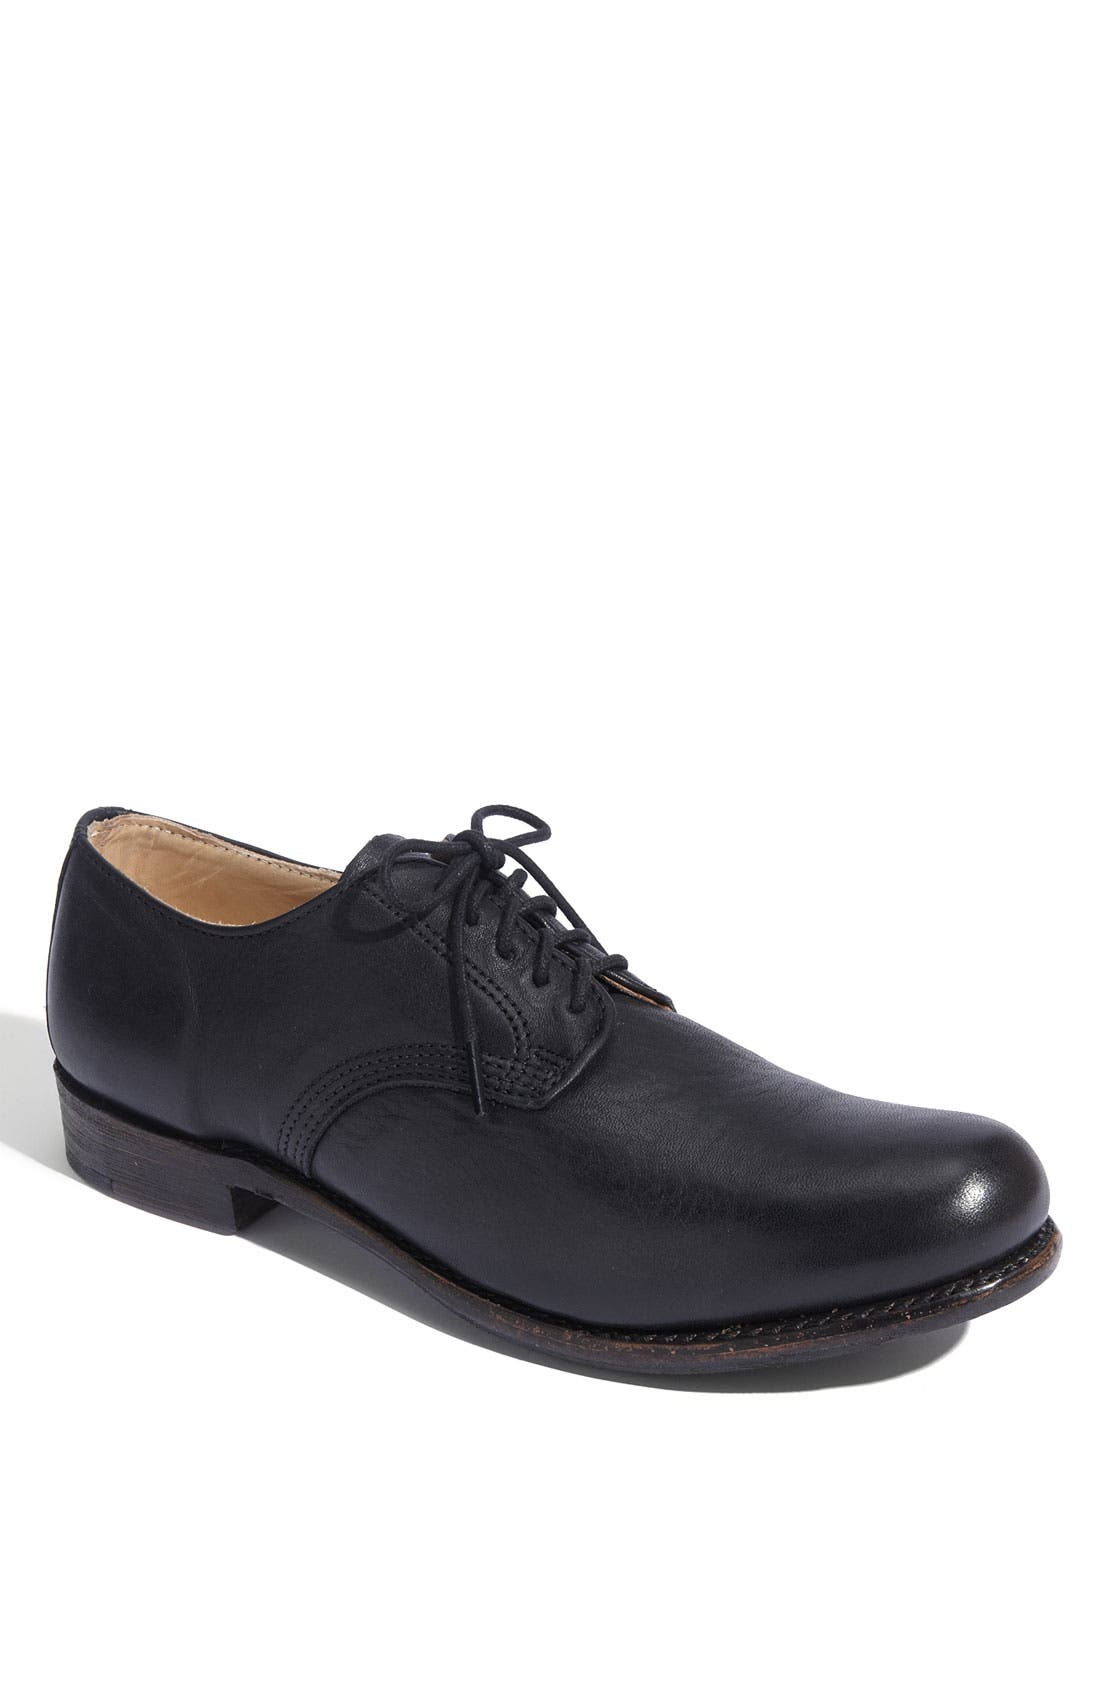 Main Image - Vintage Shoe Company 'Judson' Oxford